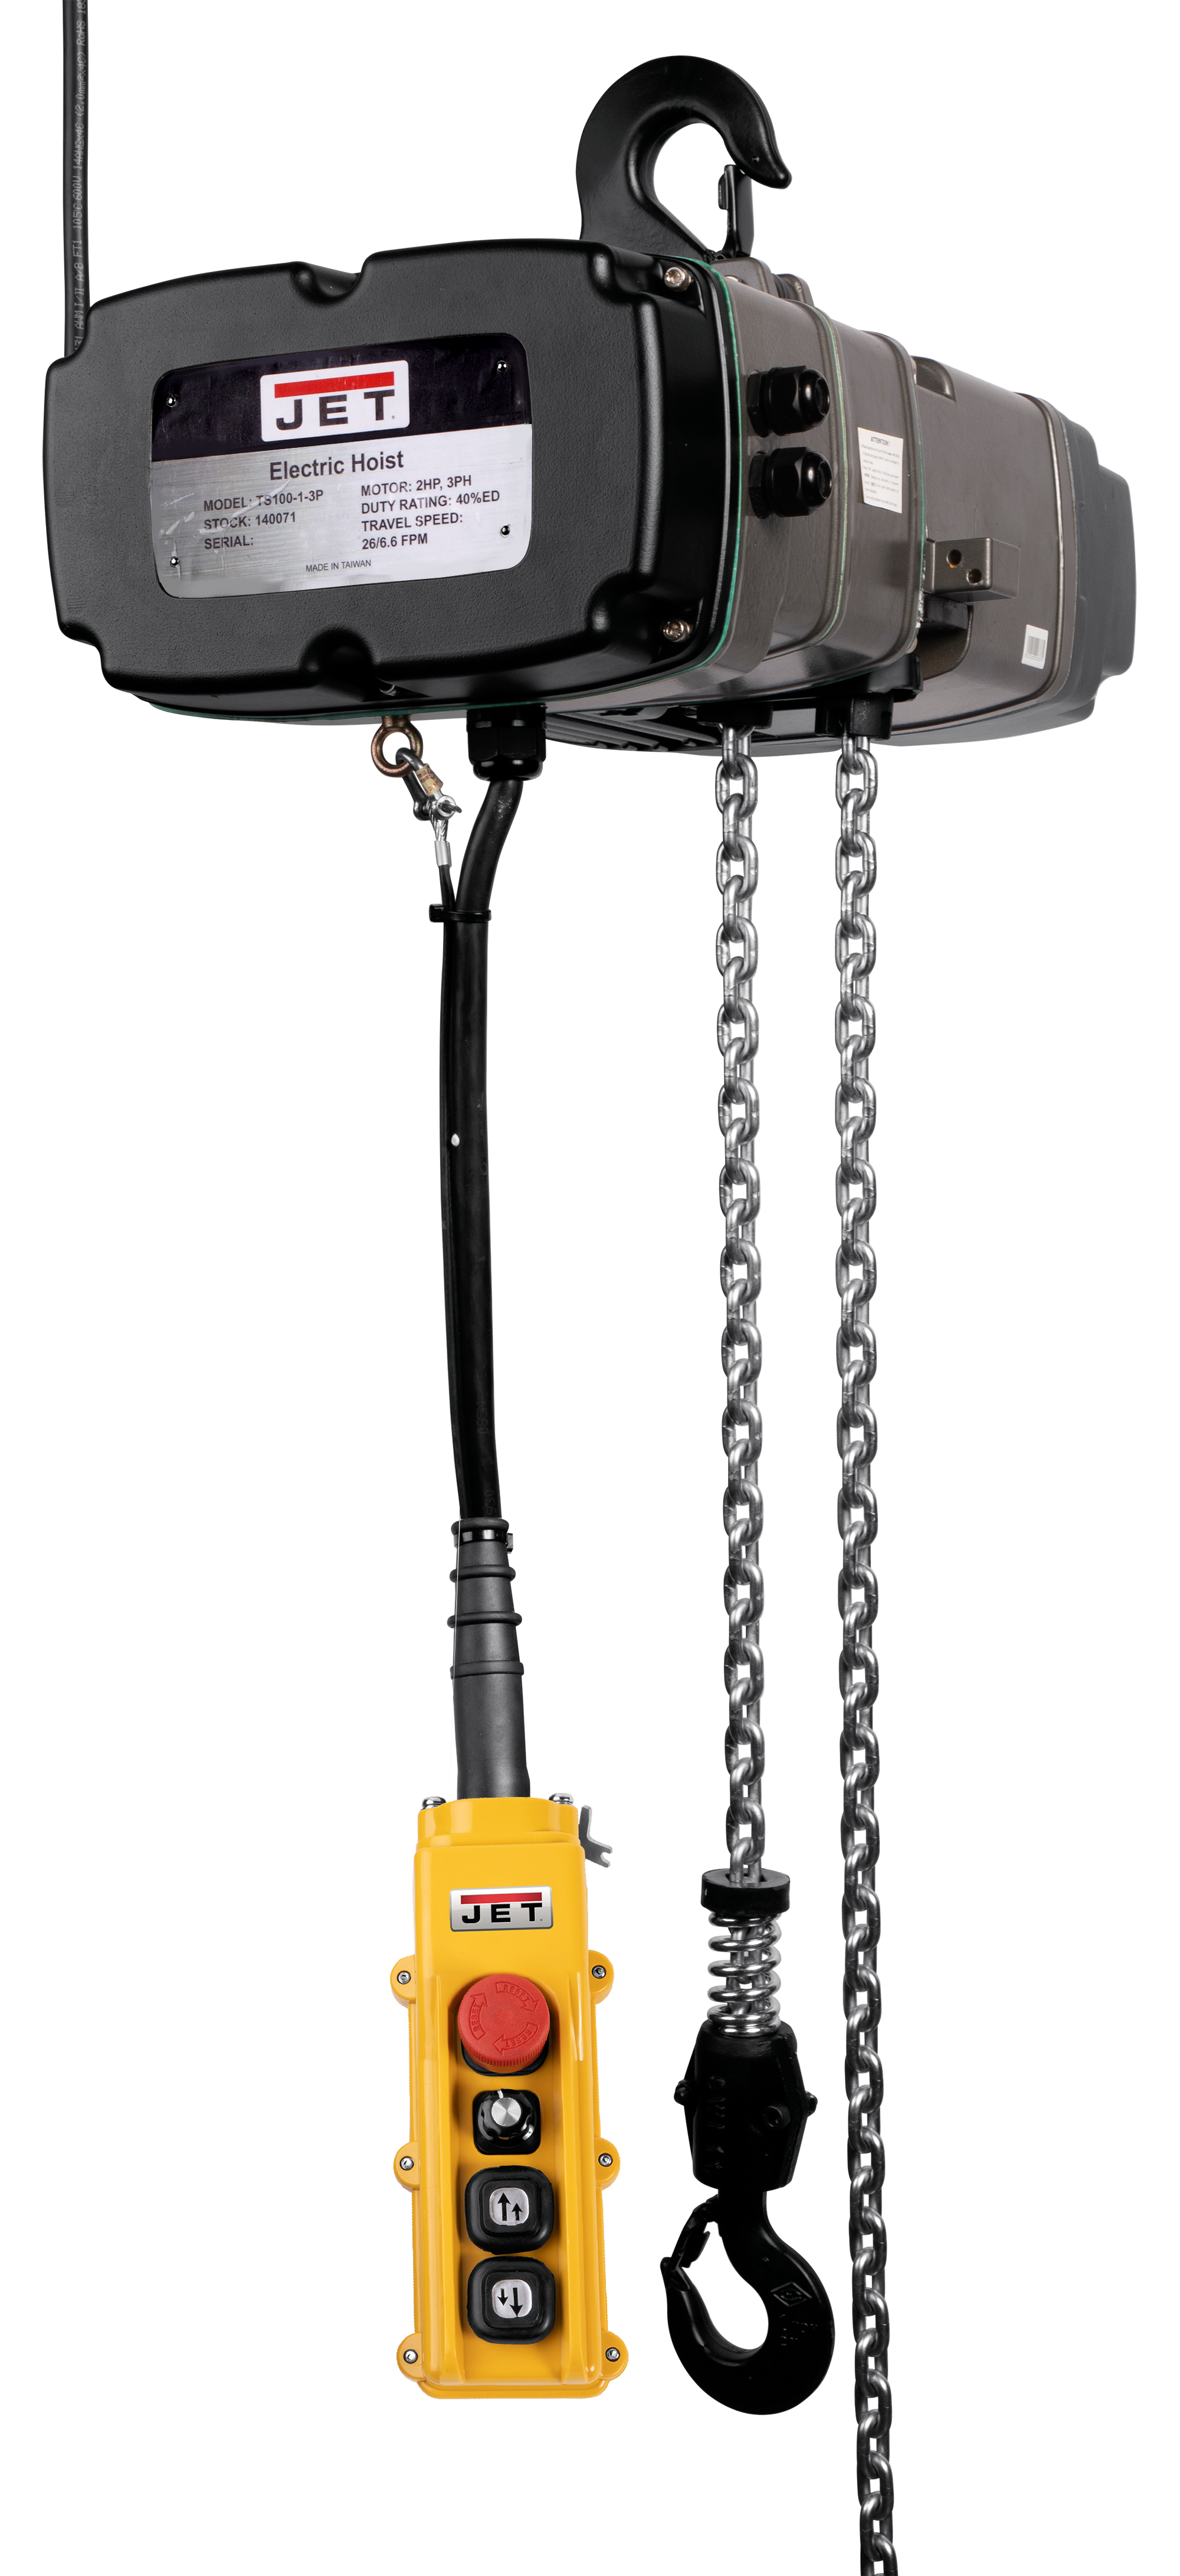 TS200-460-020,2-Ton Two Speed Electric Chain Hoist  3-Phase 20' Lift